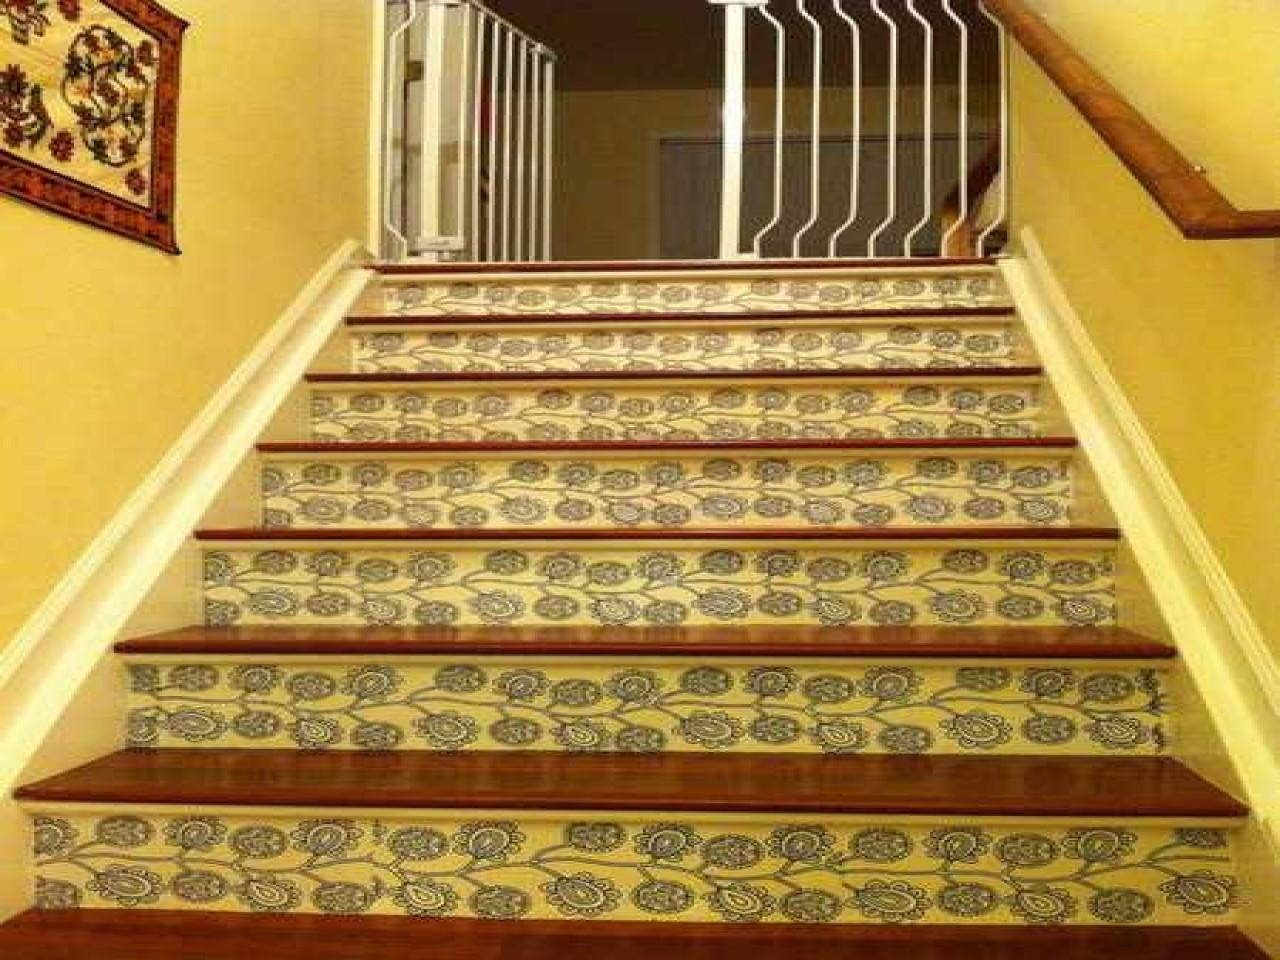 Cool Spiral Staircases Geometric Stencils Stair